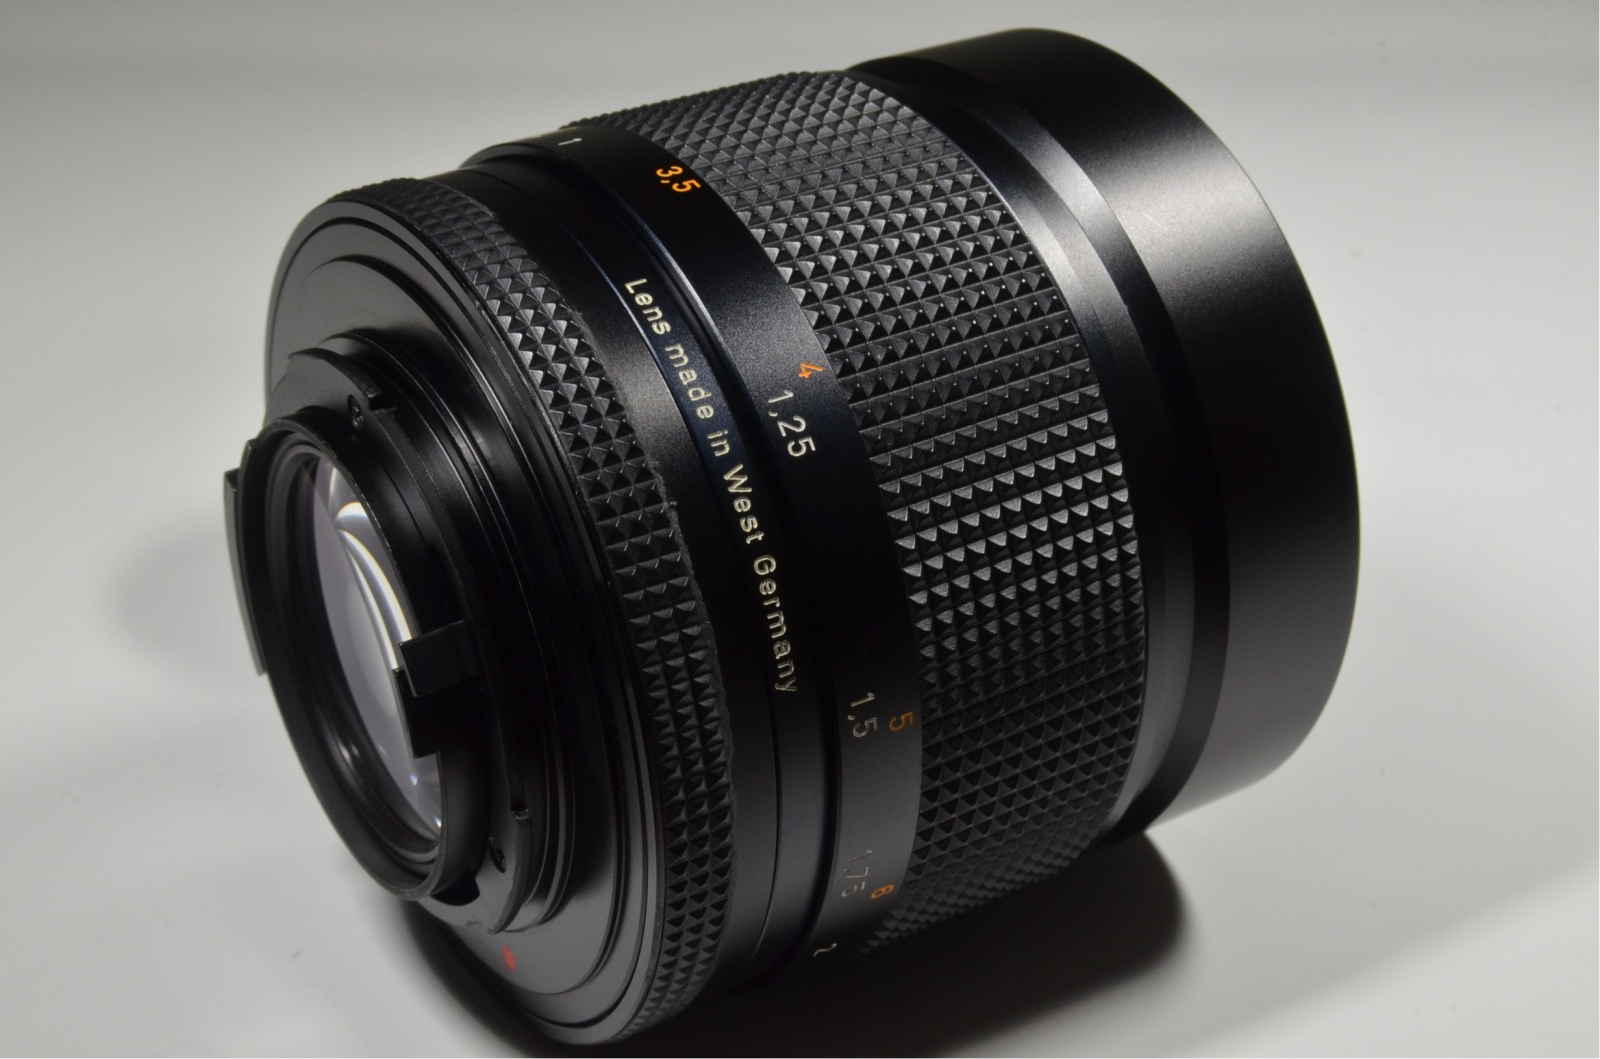 contax carl zeiss planar t* 85mm f1.4 aeg with mutar i 2x